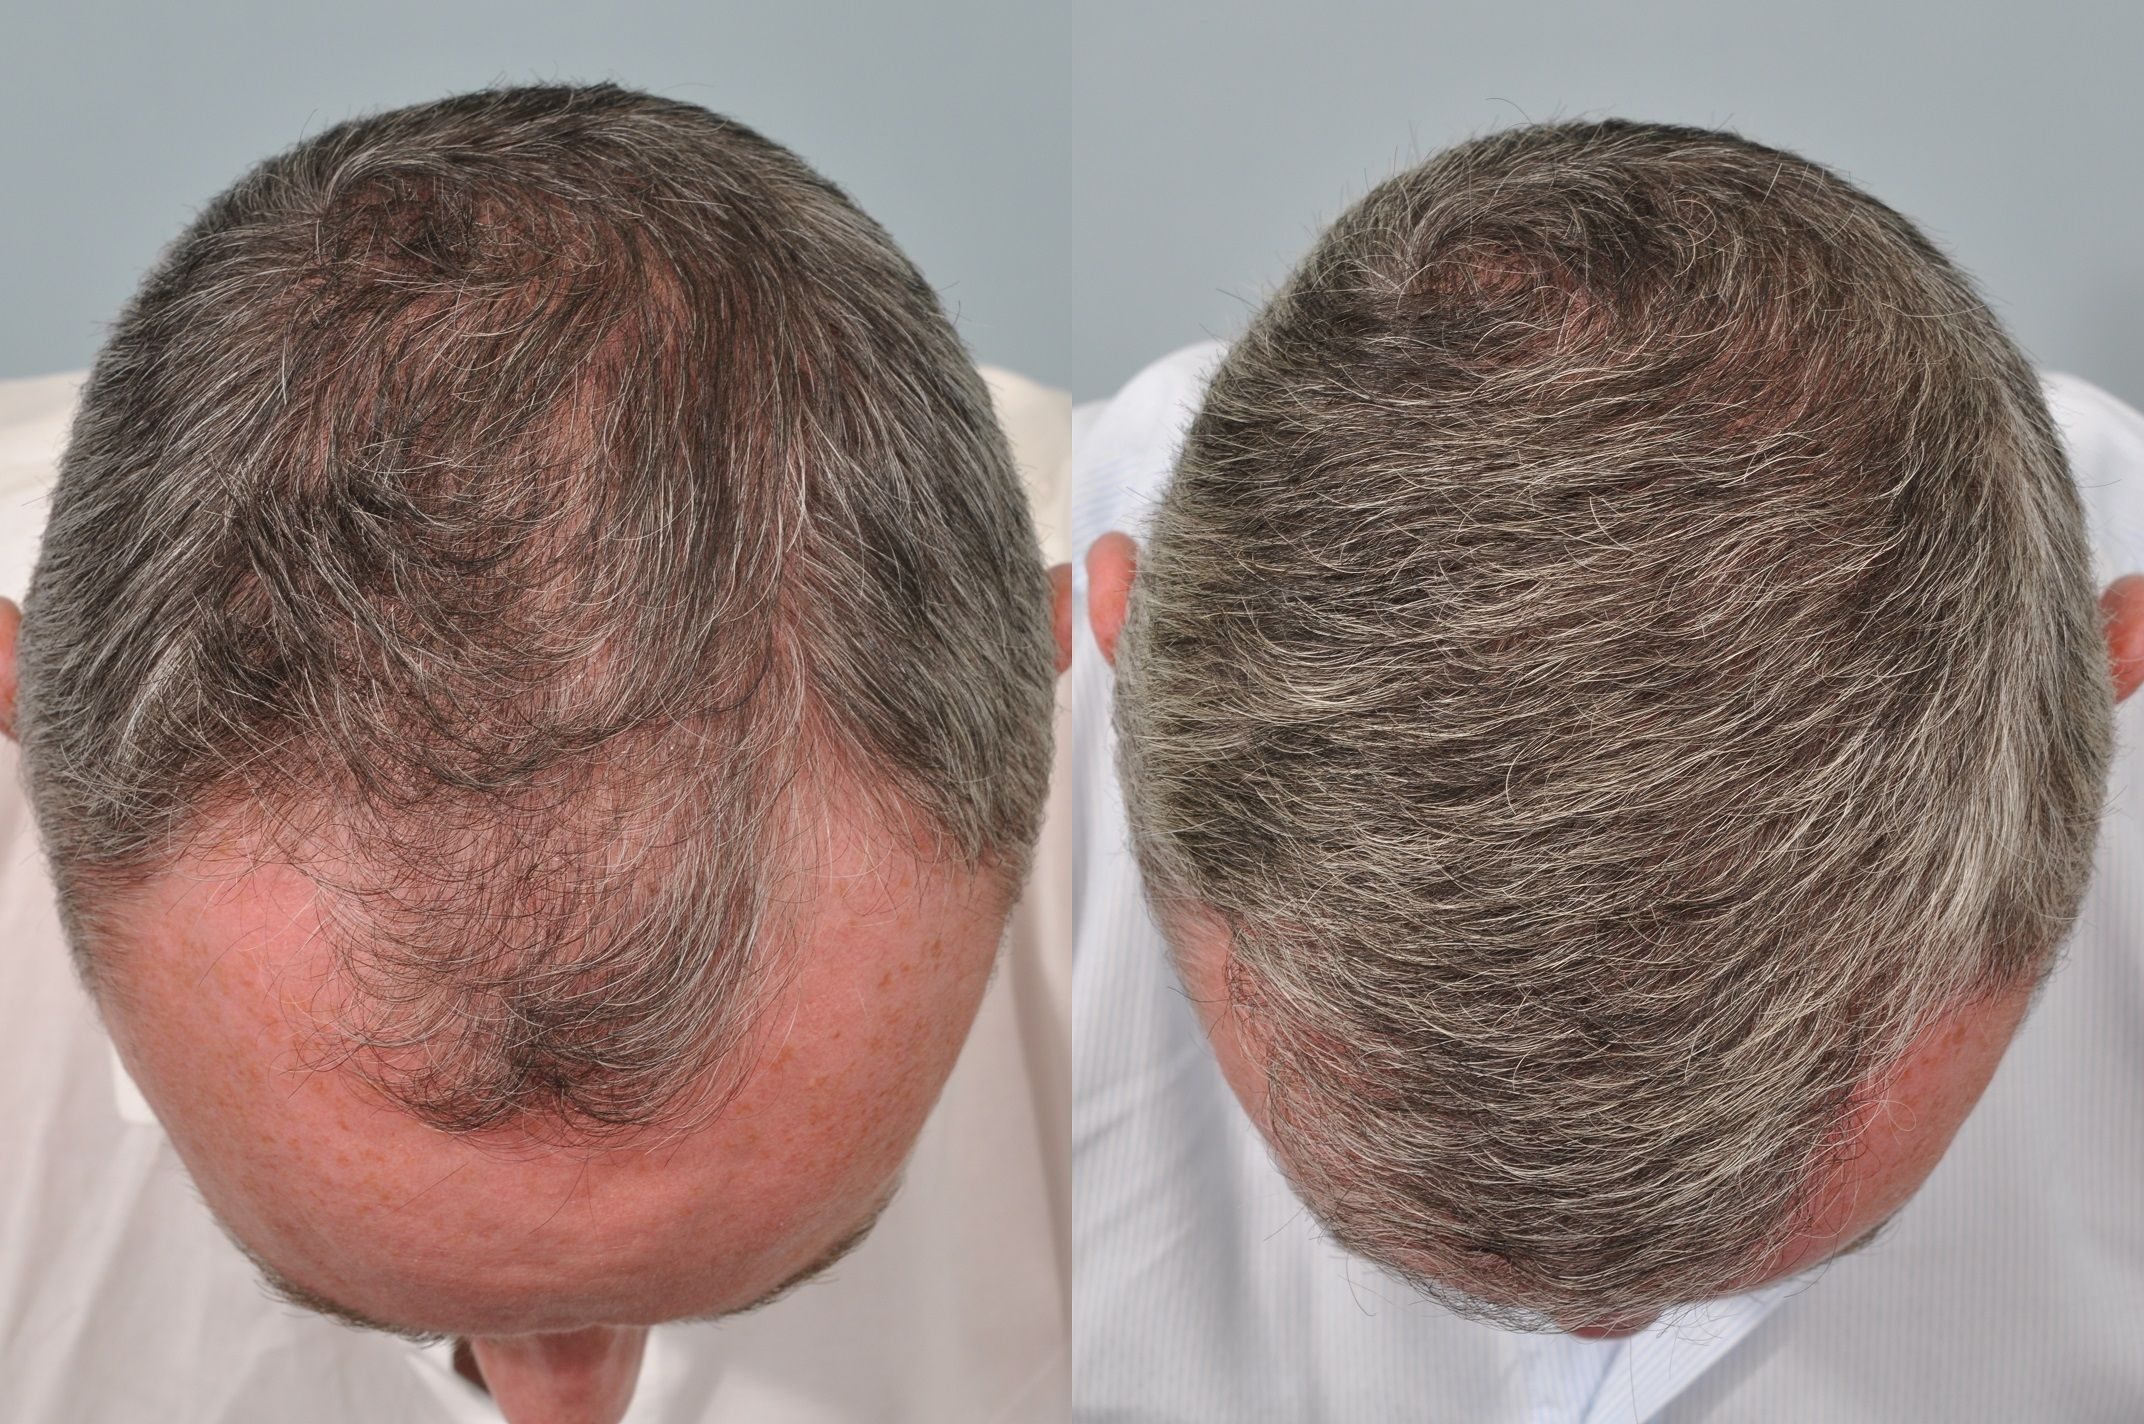 hair-transplant-Islamabad-Before and after results